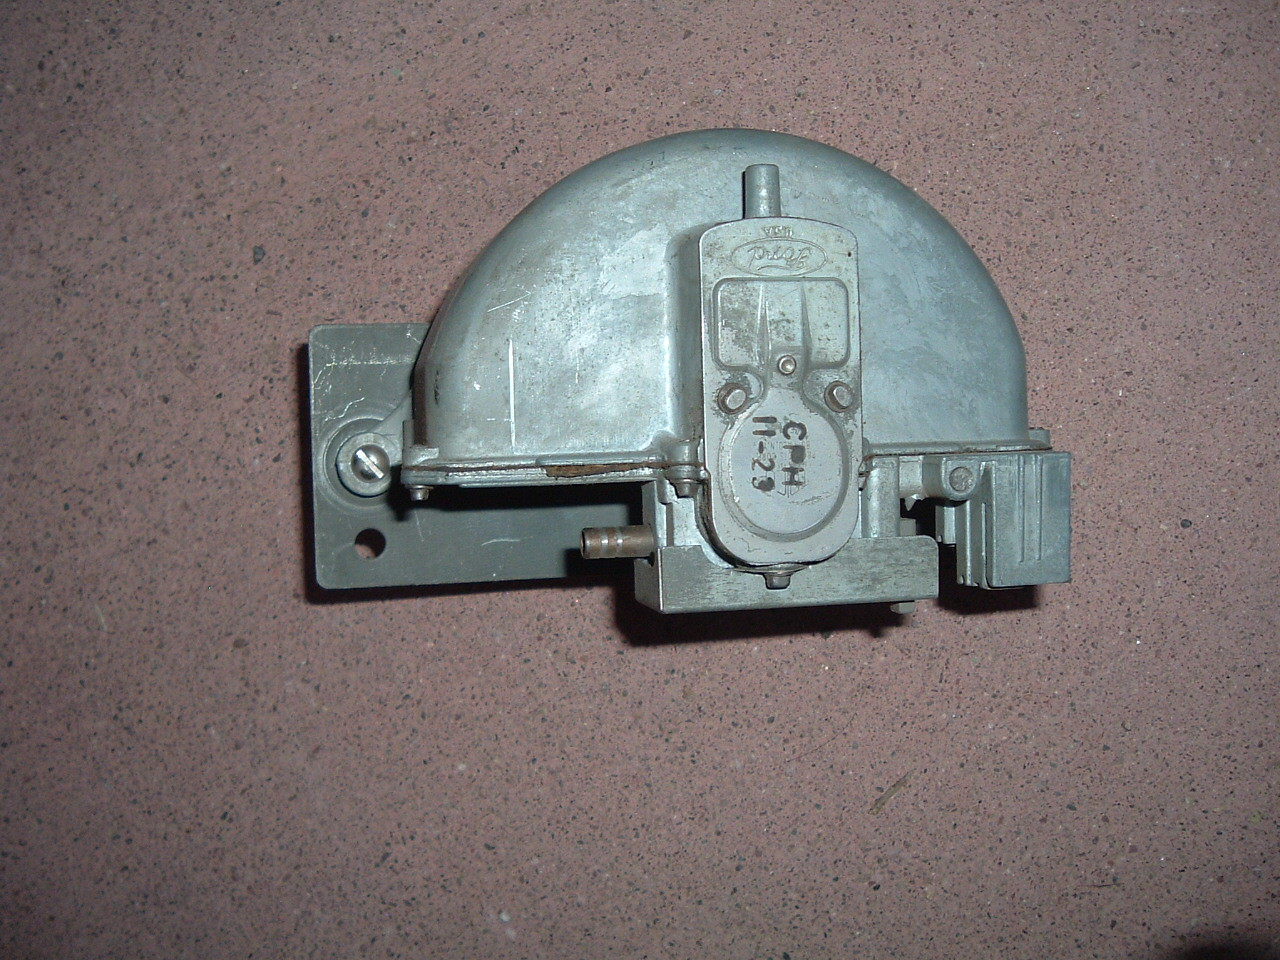 1958 ford passenger car windshield wiper motor truico # CPH 11-23 (z cph1123)